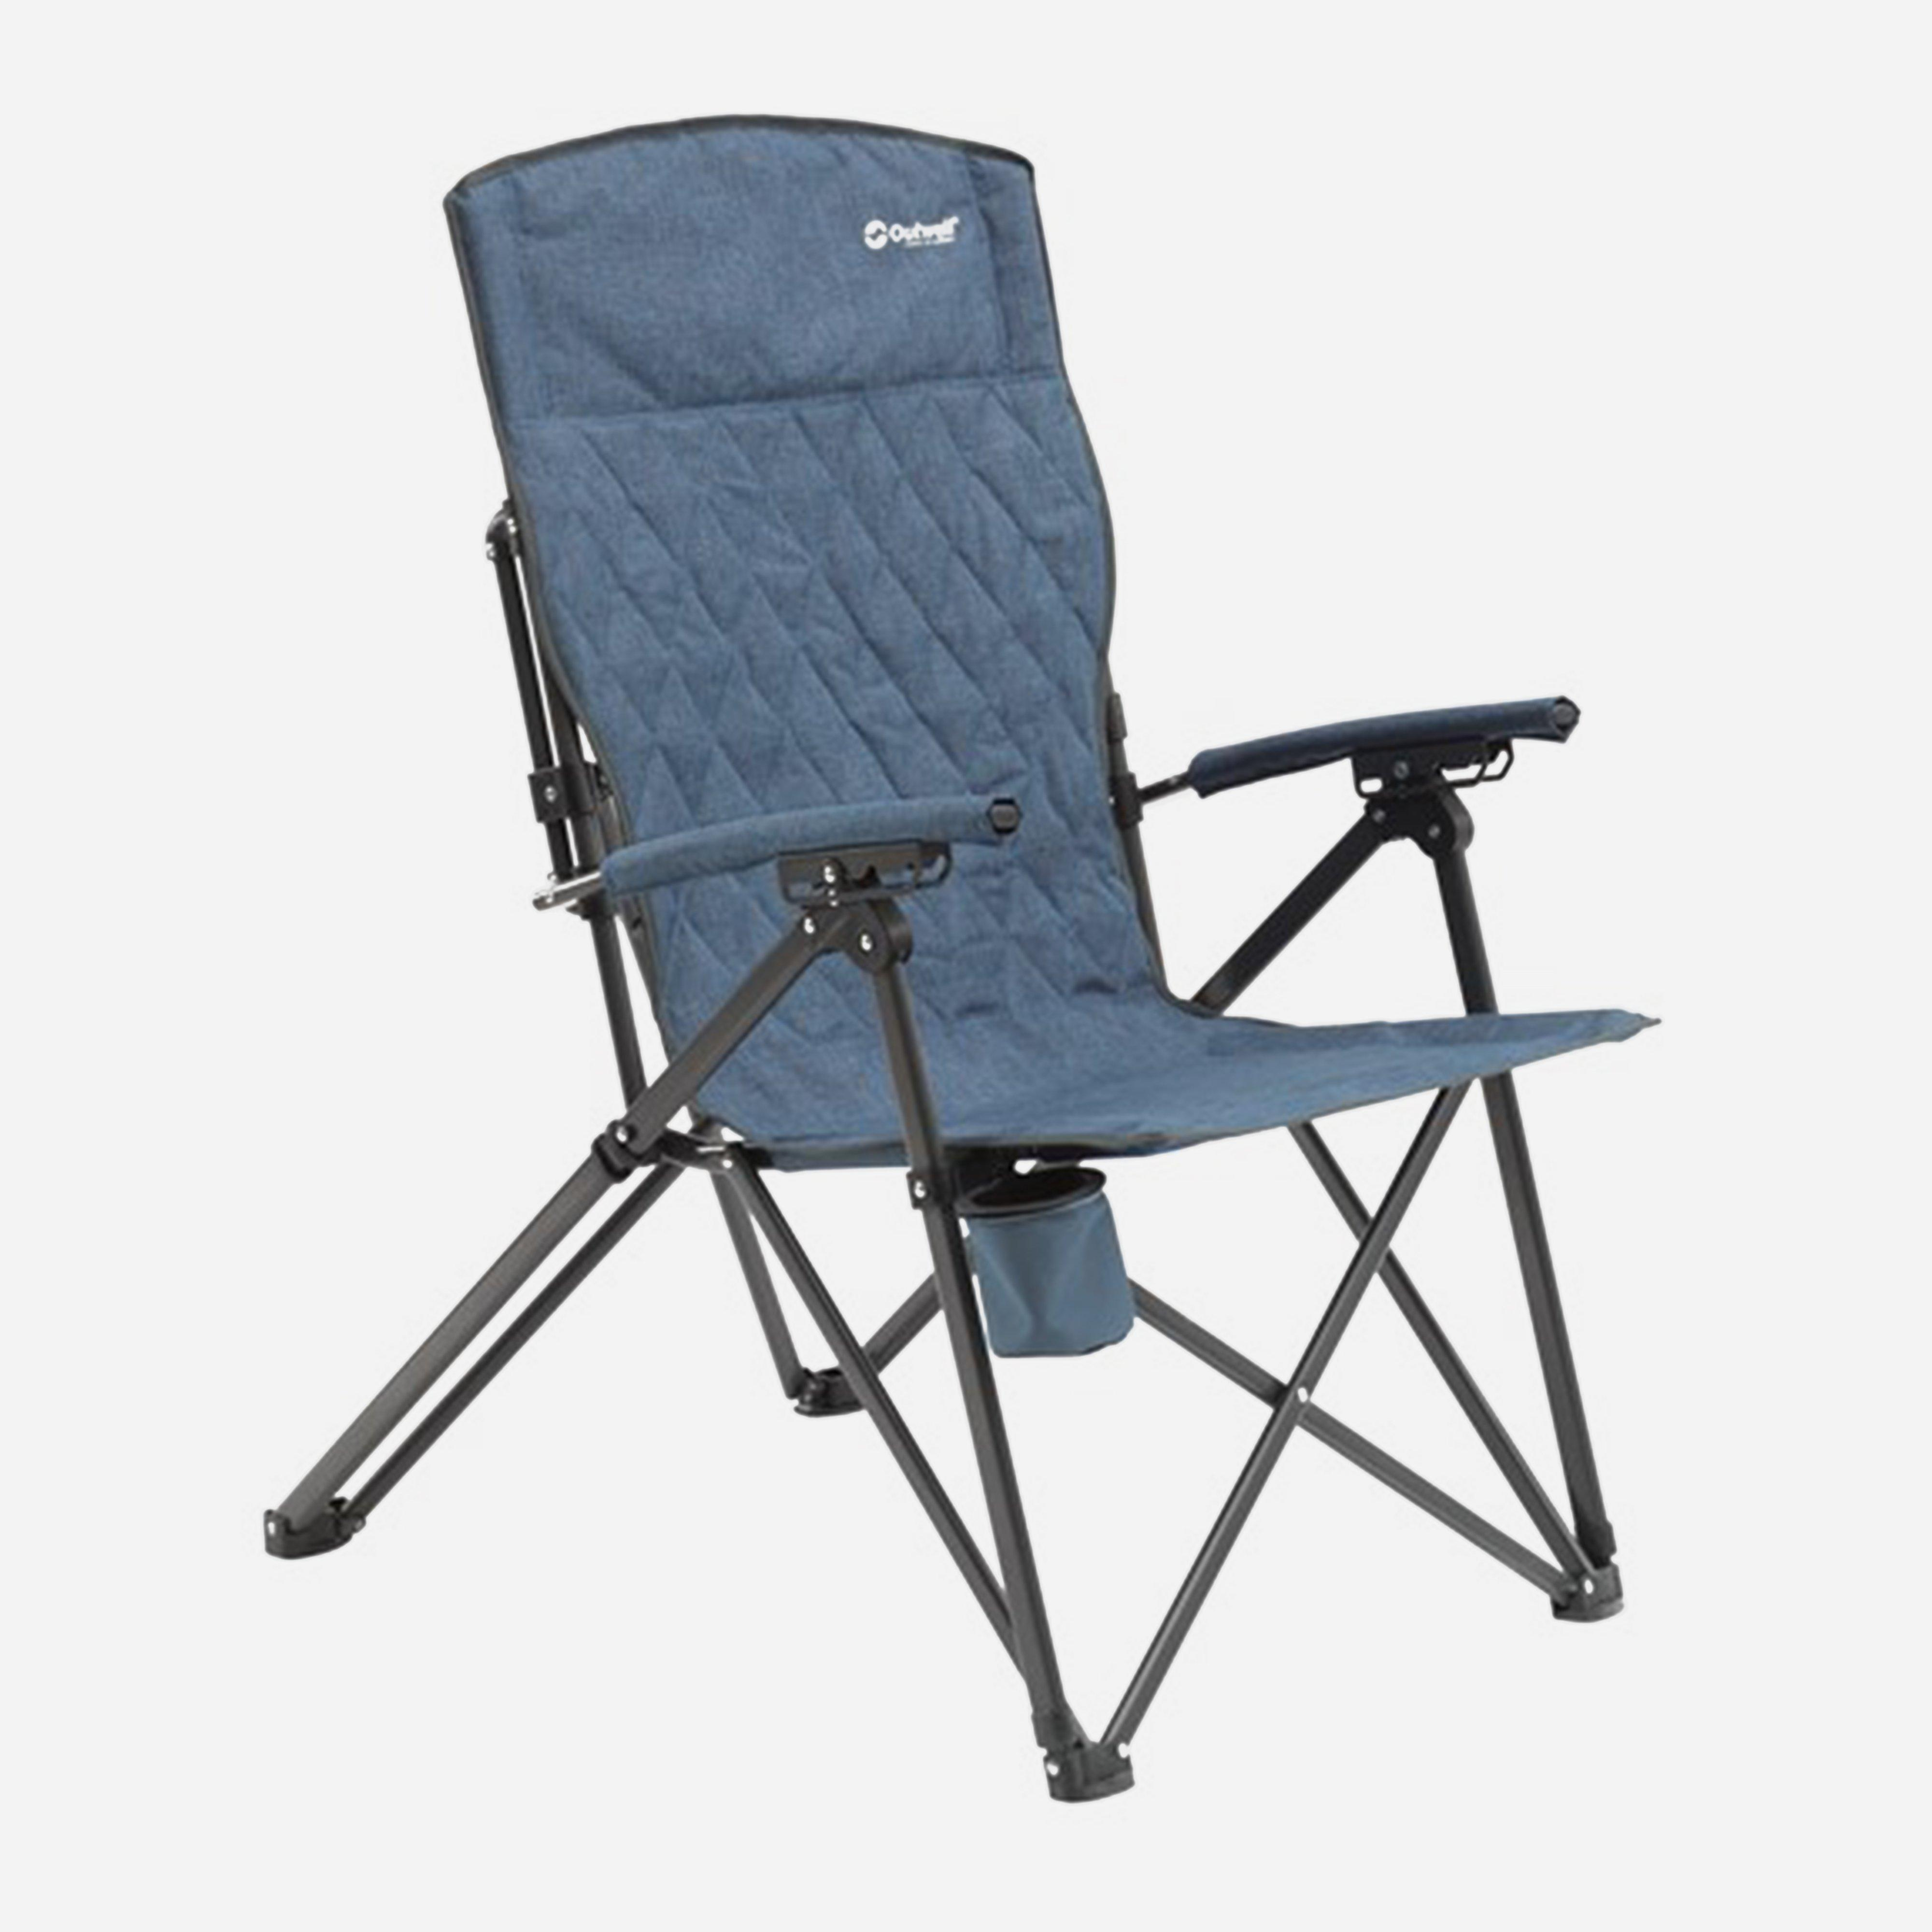 Outwell Outwell Ullswater Chair - Blue, Blue